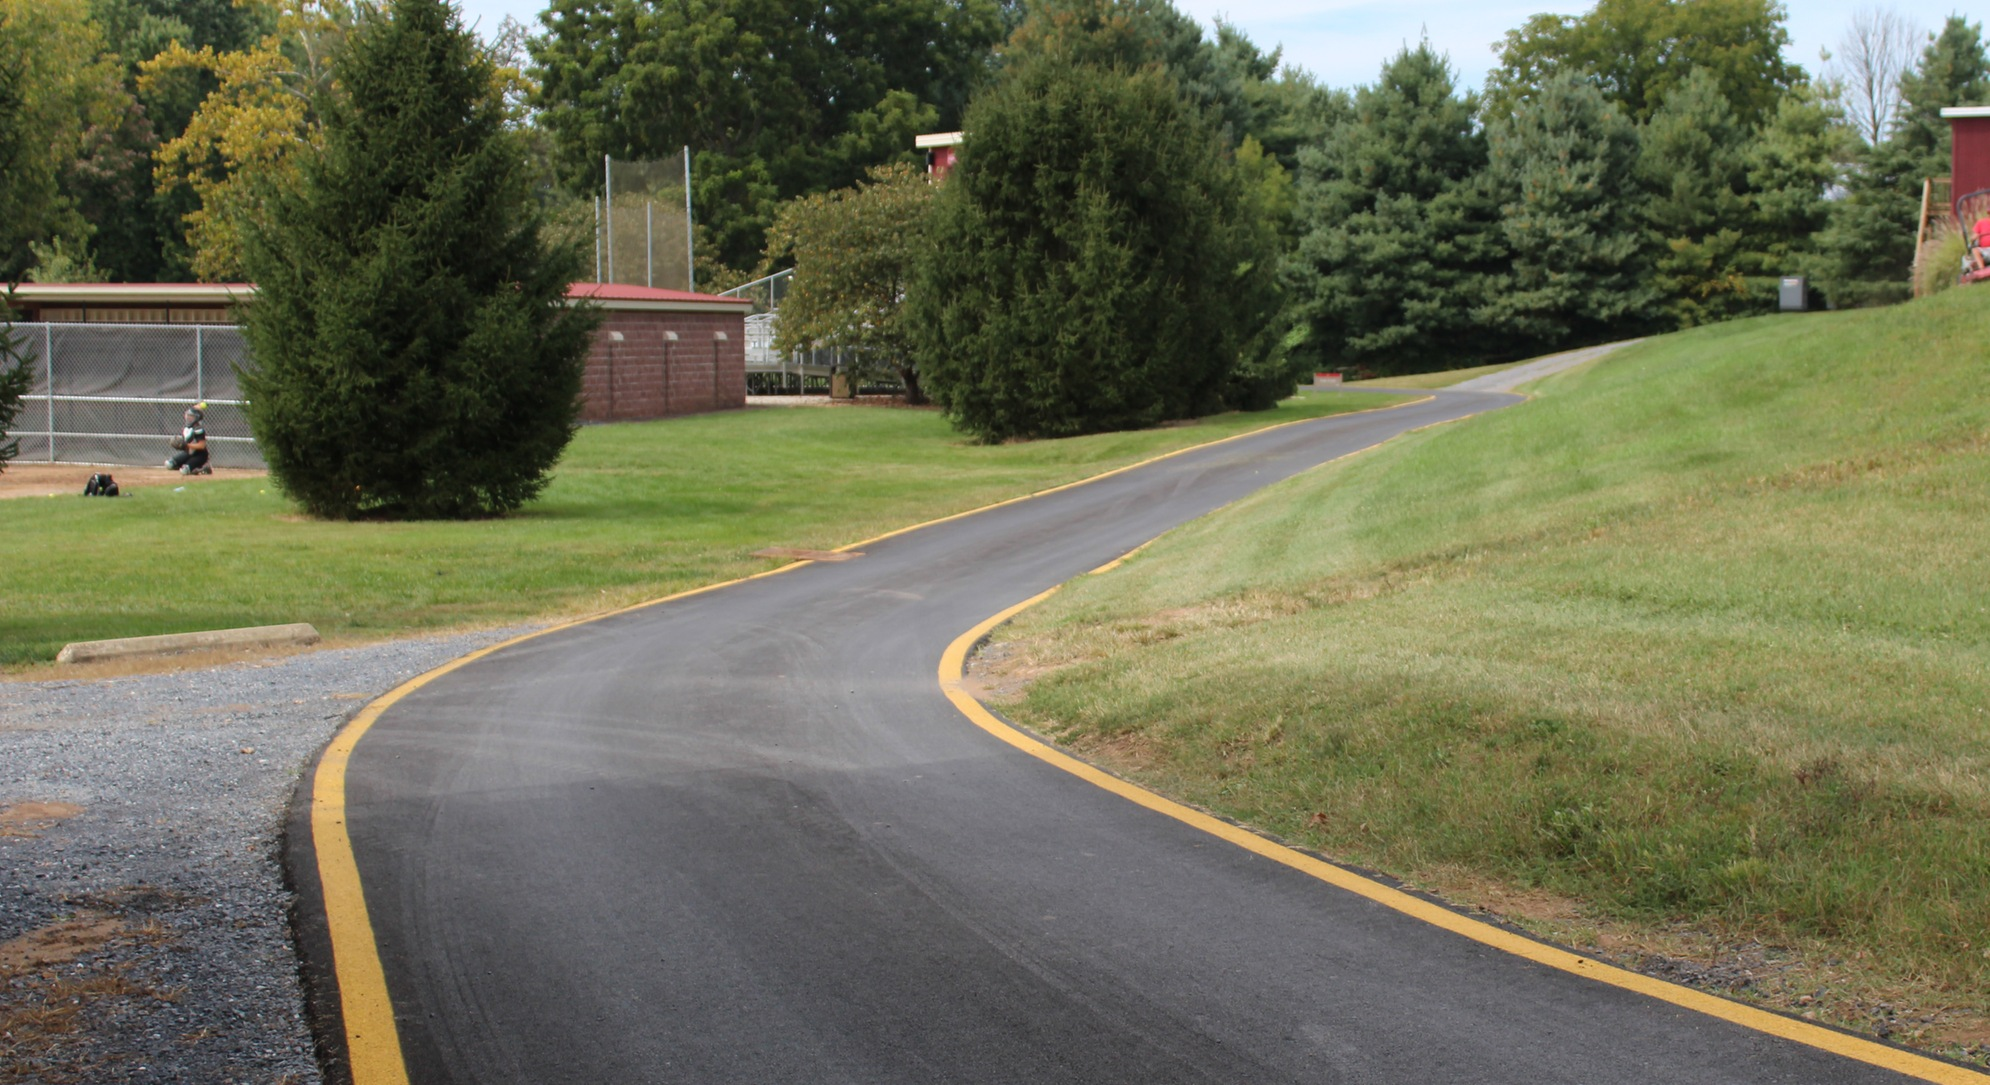 road leading to softball field